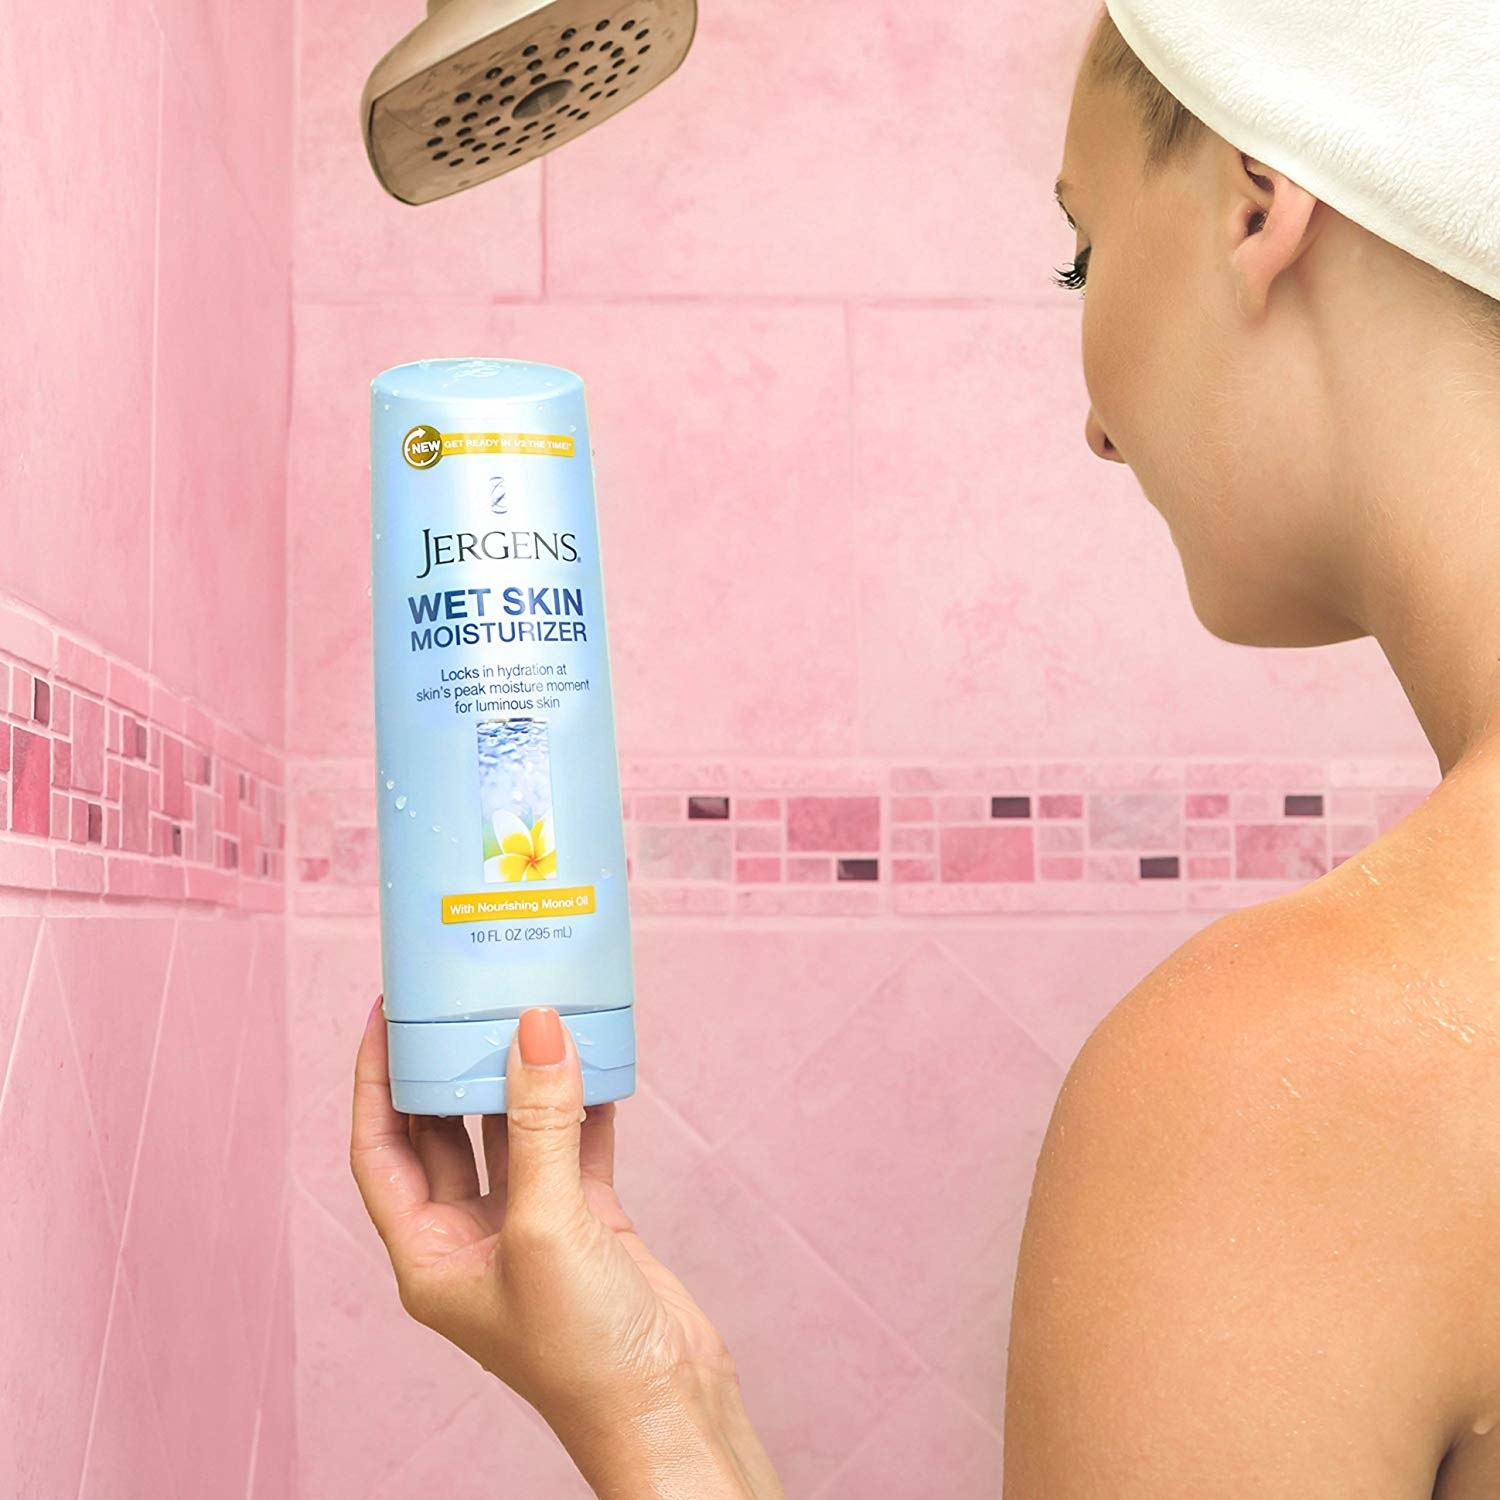 Model holding the bottle of lotion in the shower